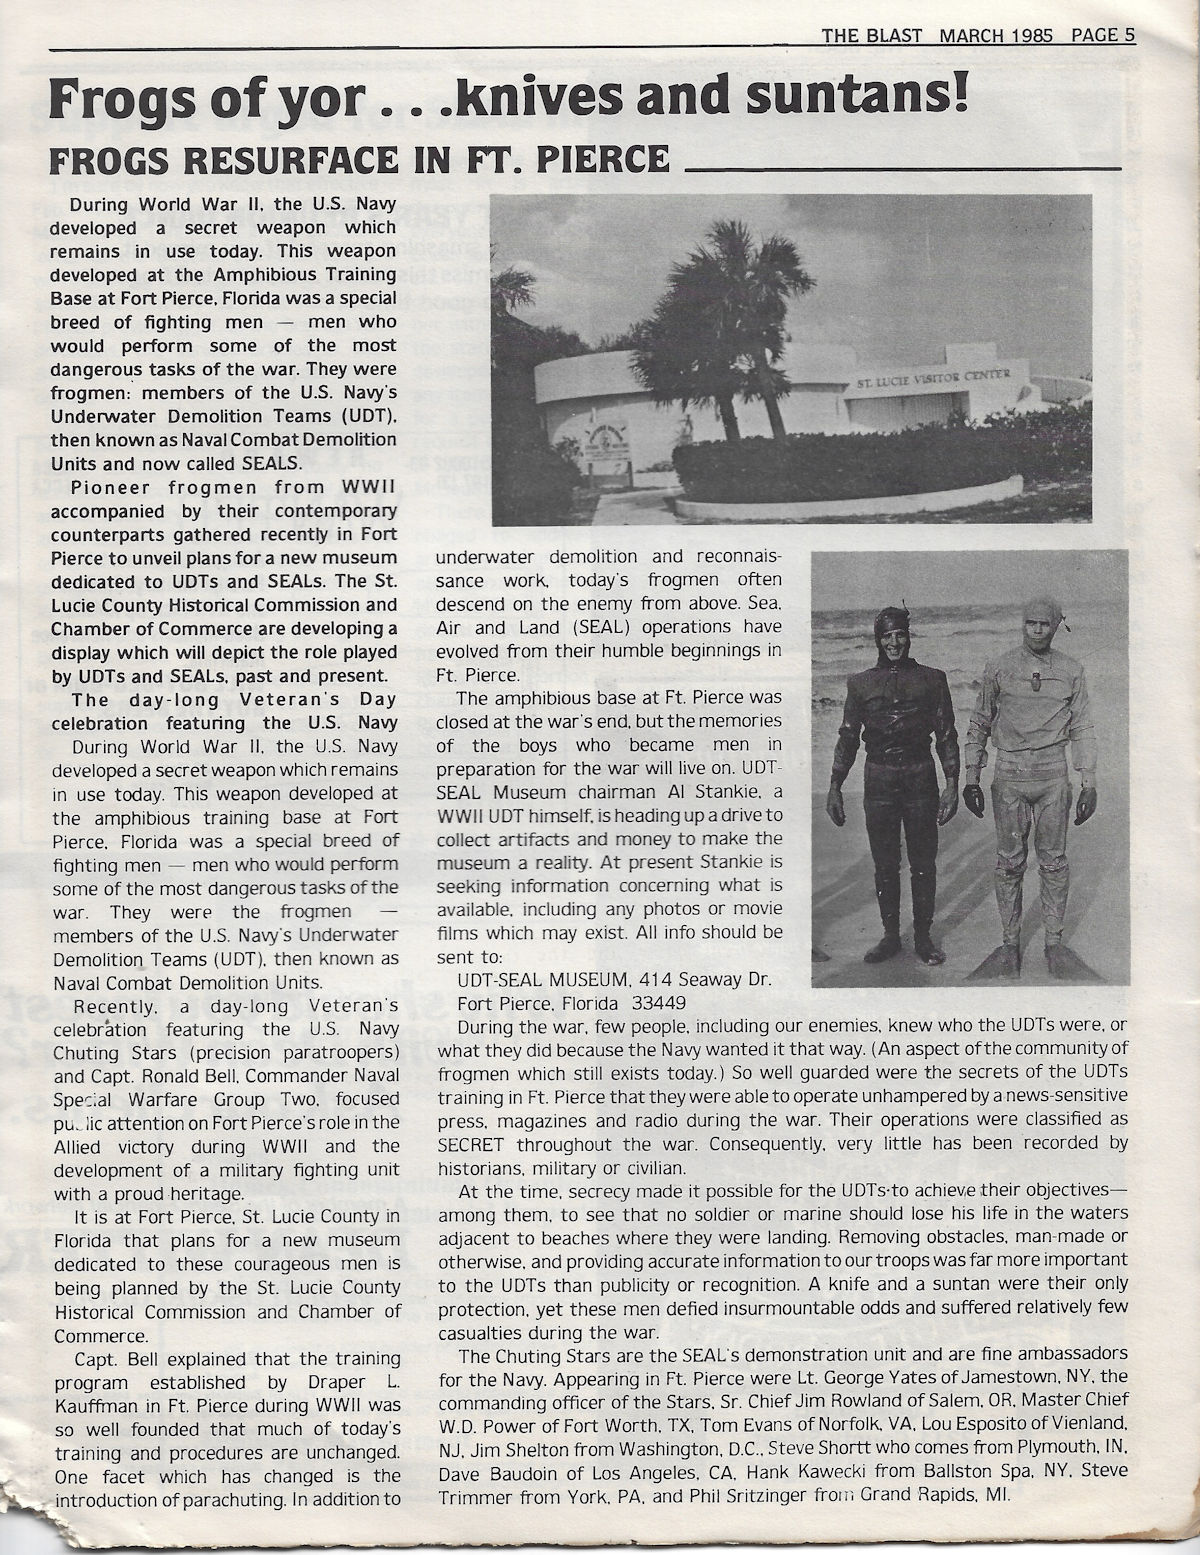 SEAL Team TWO page 19 photo album